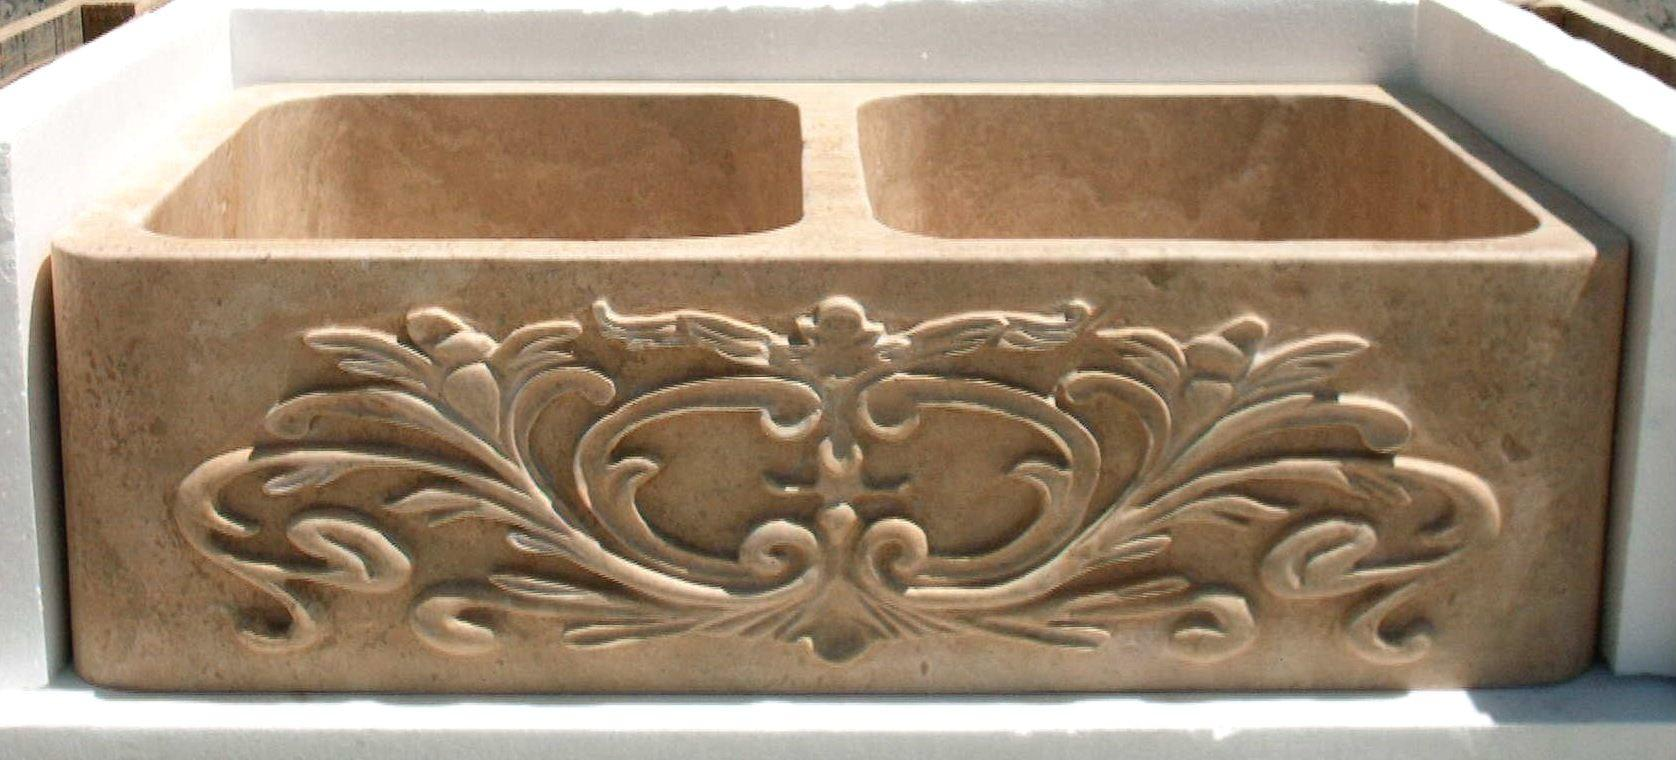 Hand Carved Apron Front Designs Stone Kitchen Sinks